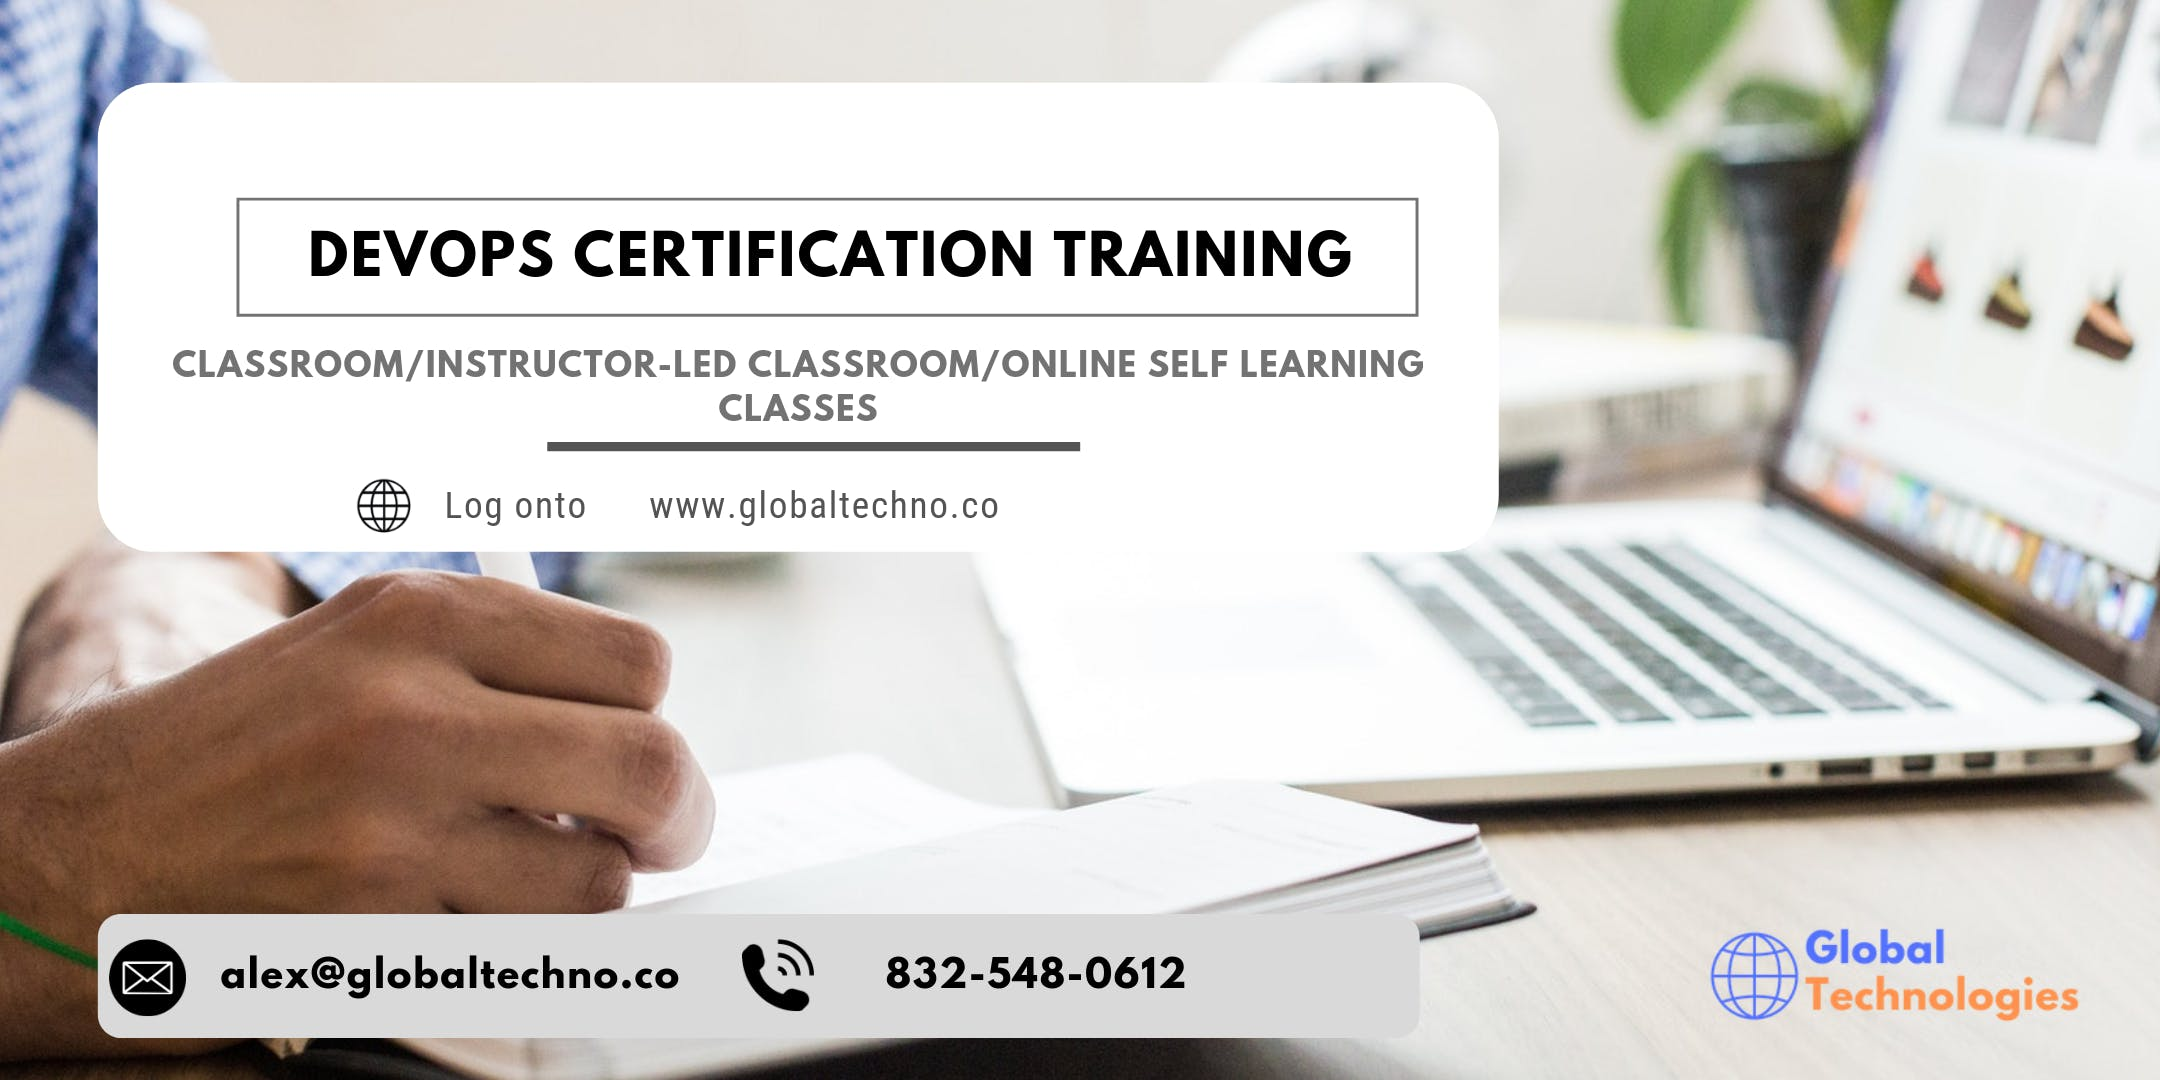 Devops Certification Training in Miami, FL